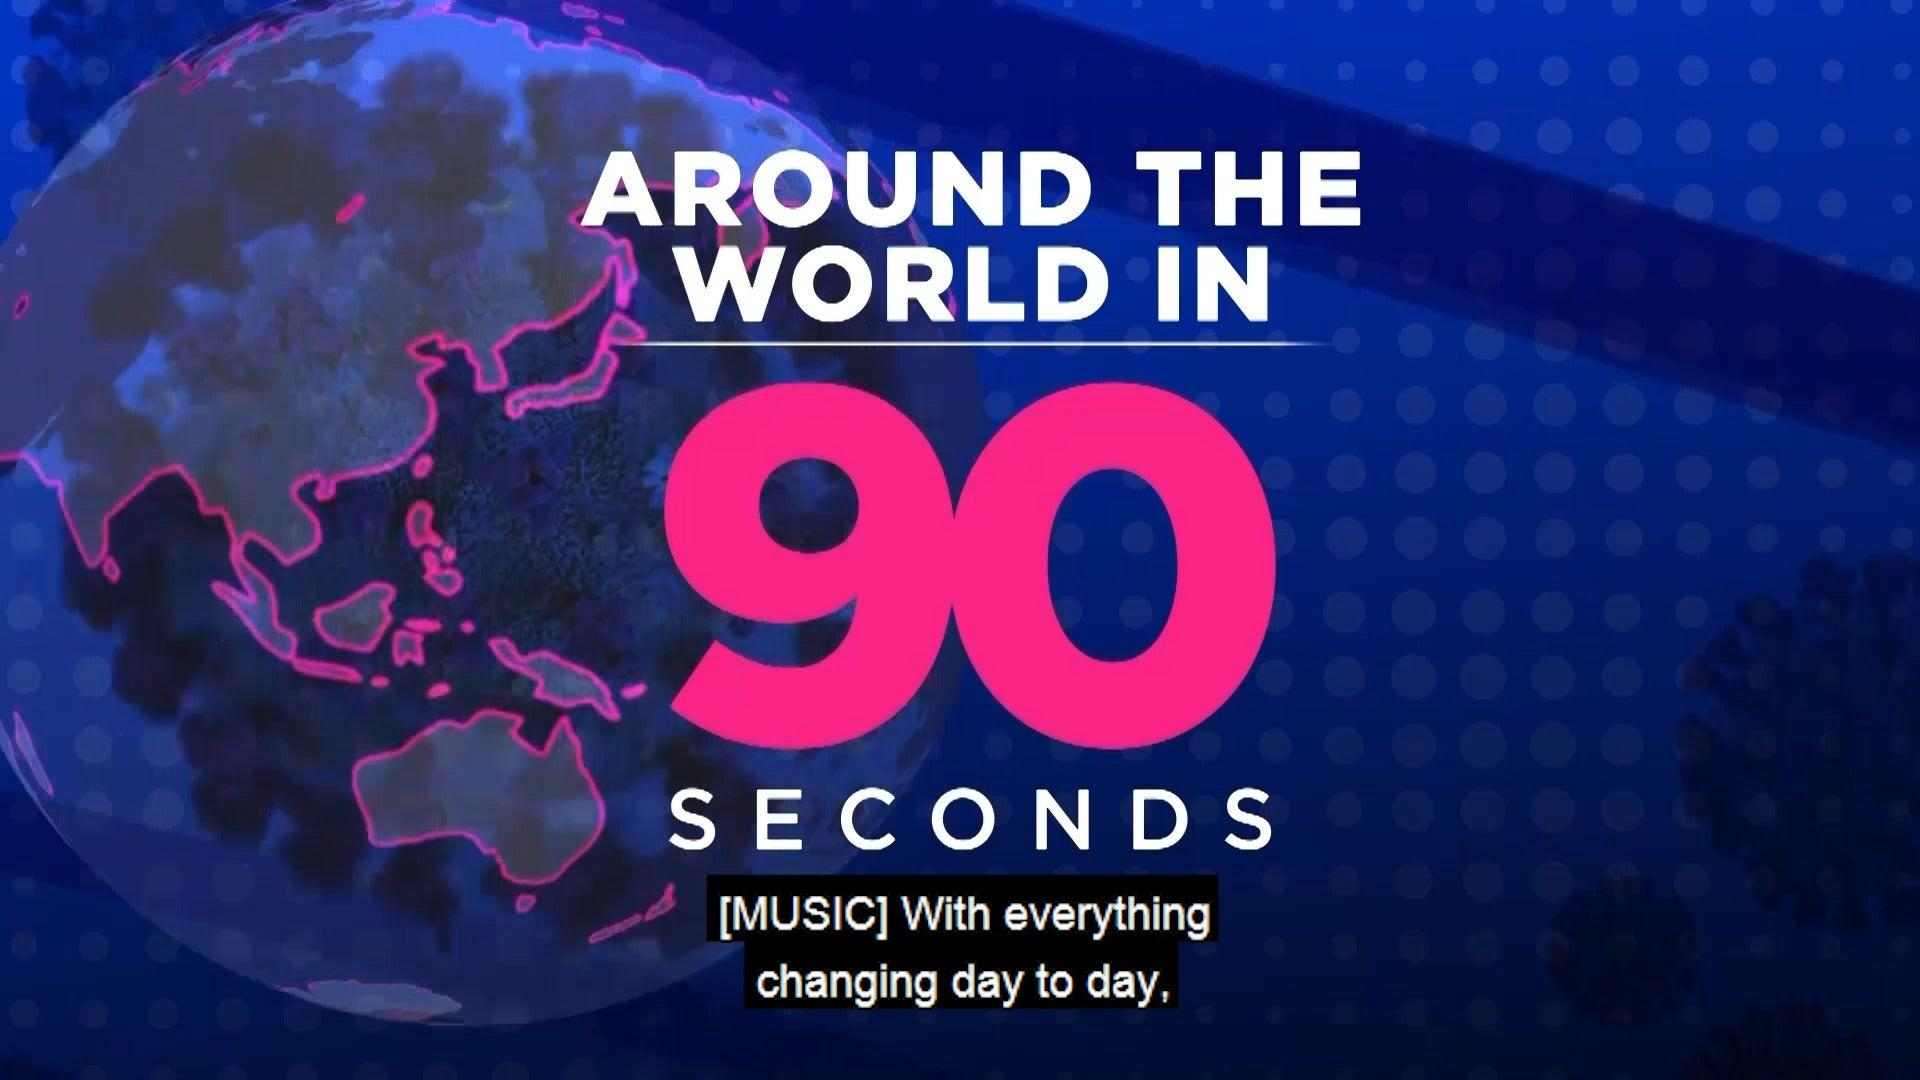 Around the World in 90 Seconds: July 7, 2020